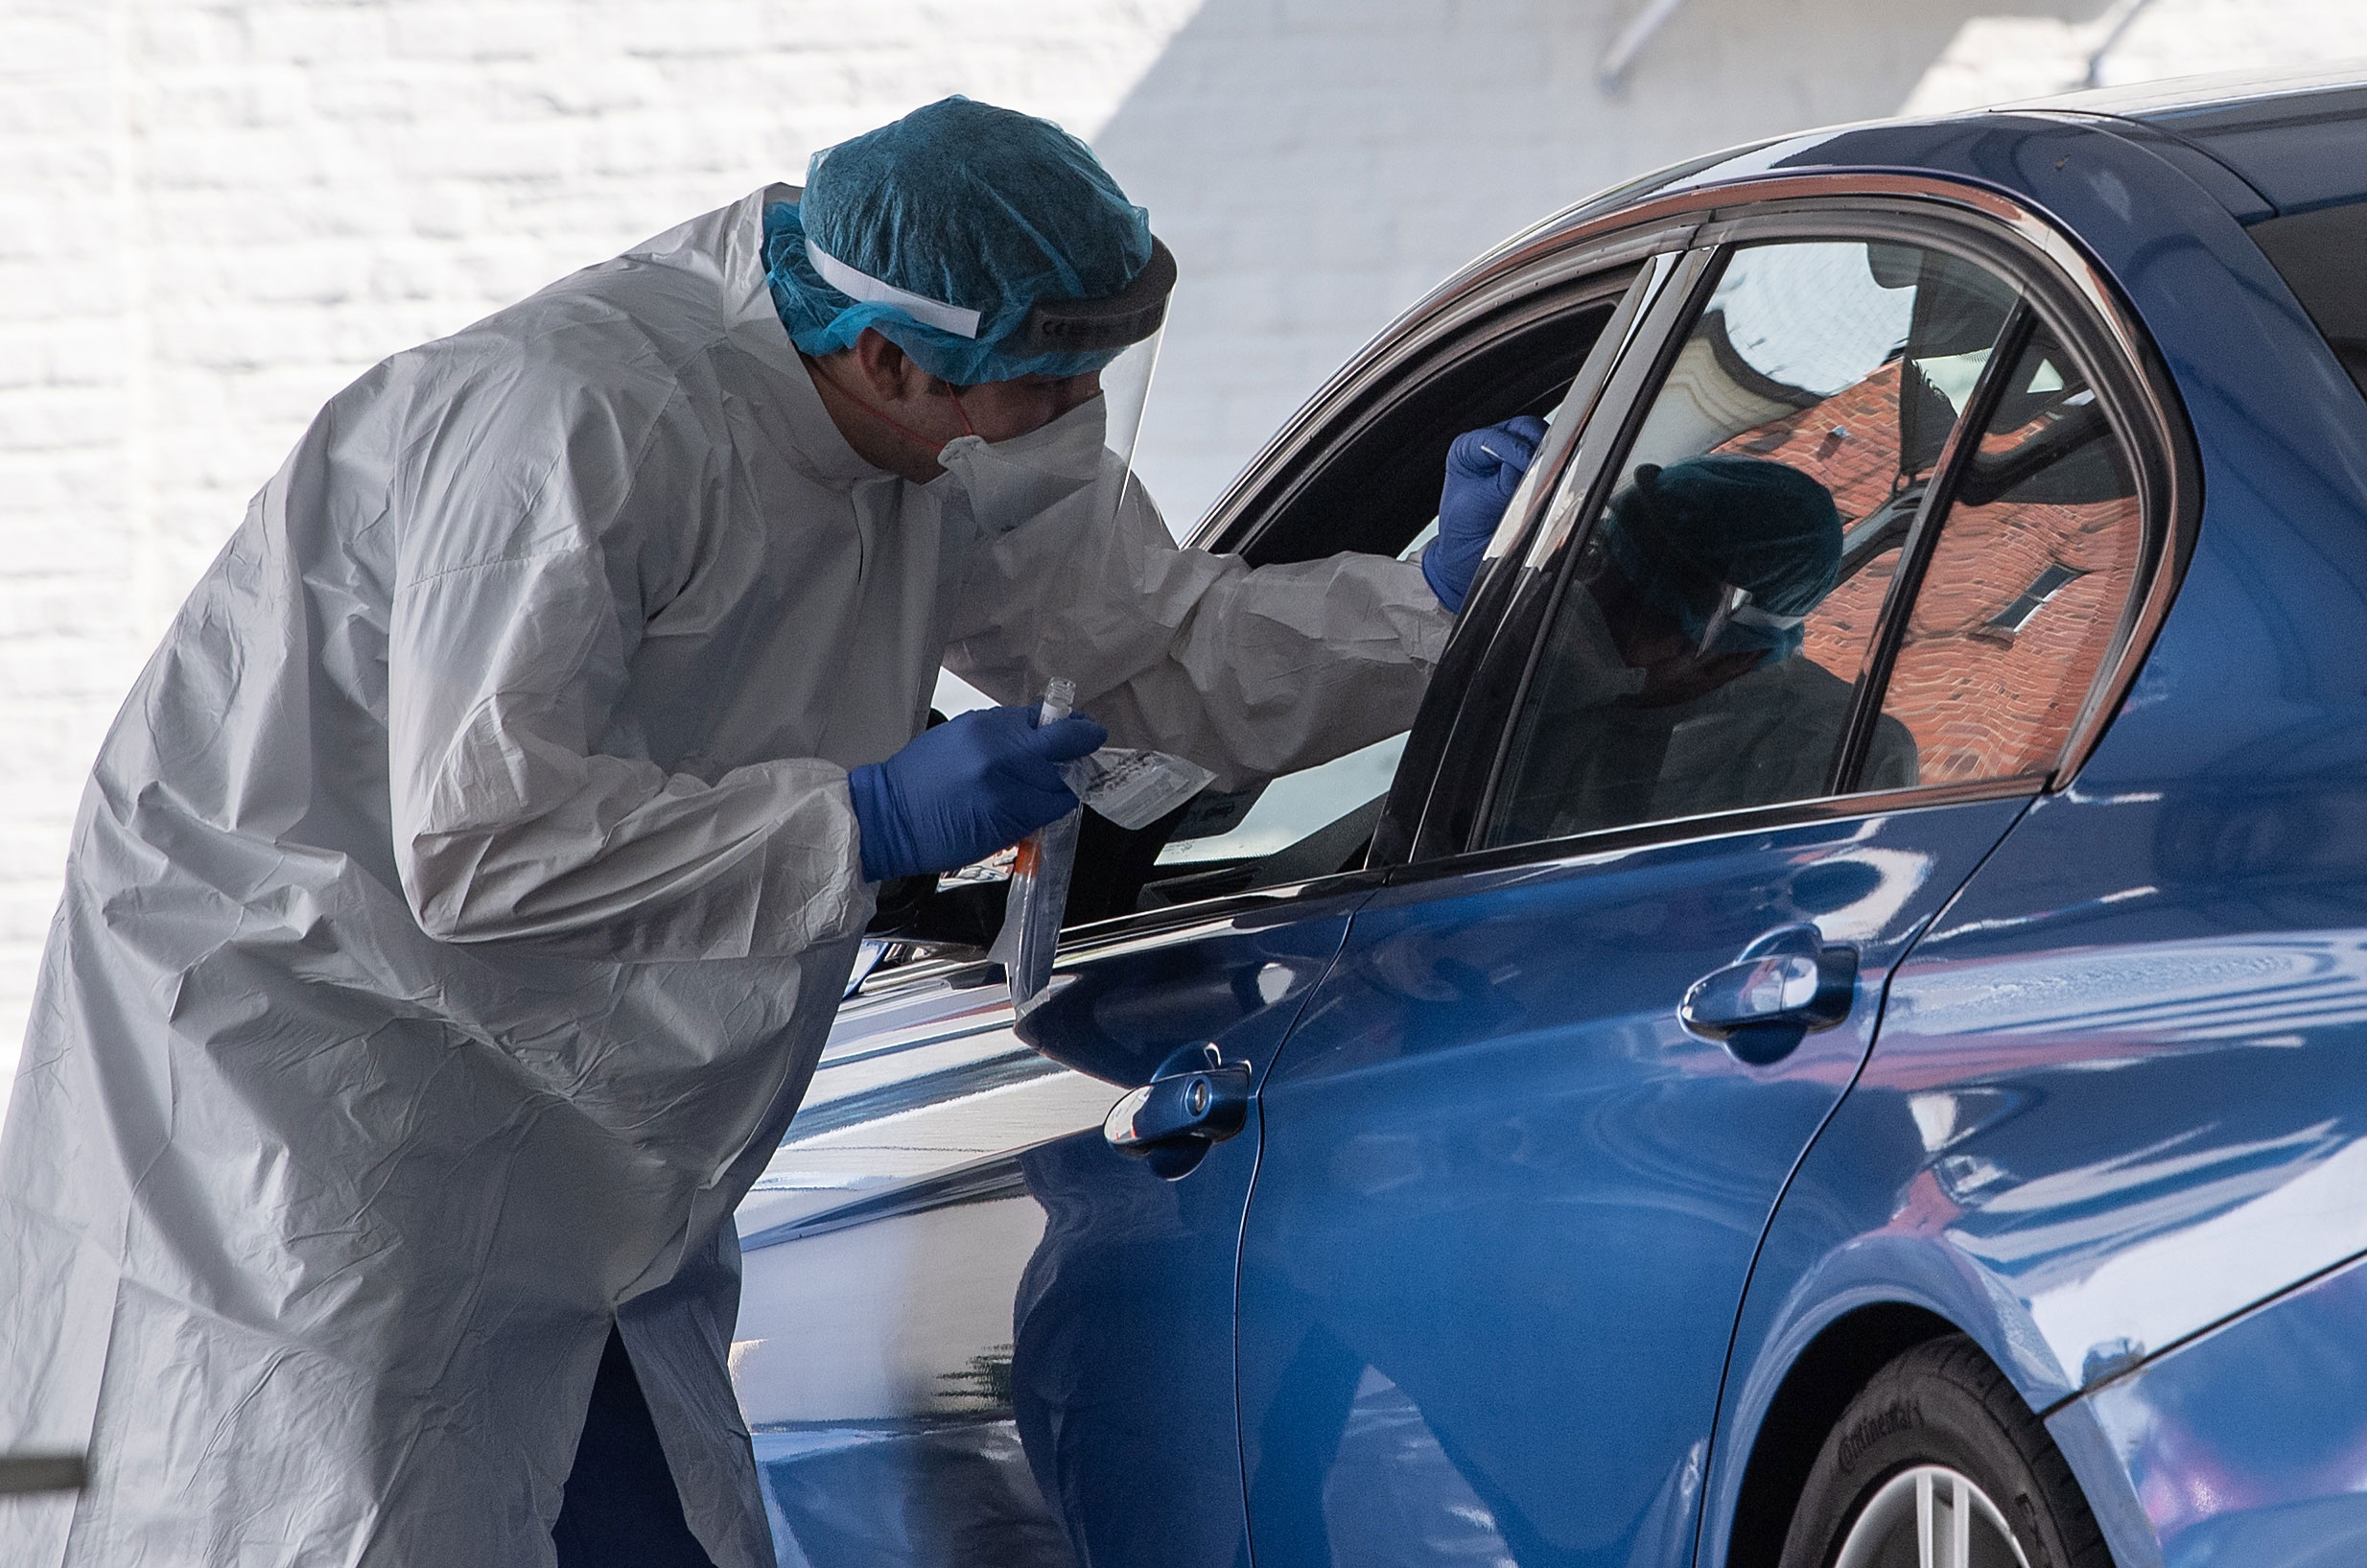 A nurse administers a COVID-19 test at a drive-through testing center at George Washington University in Washington, on May 7.